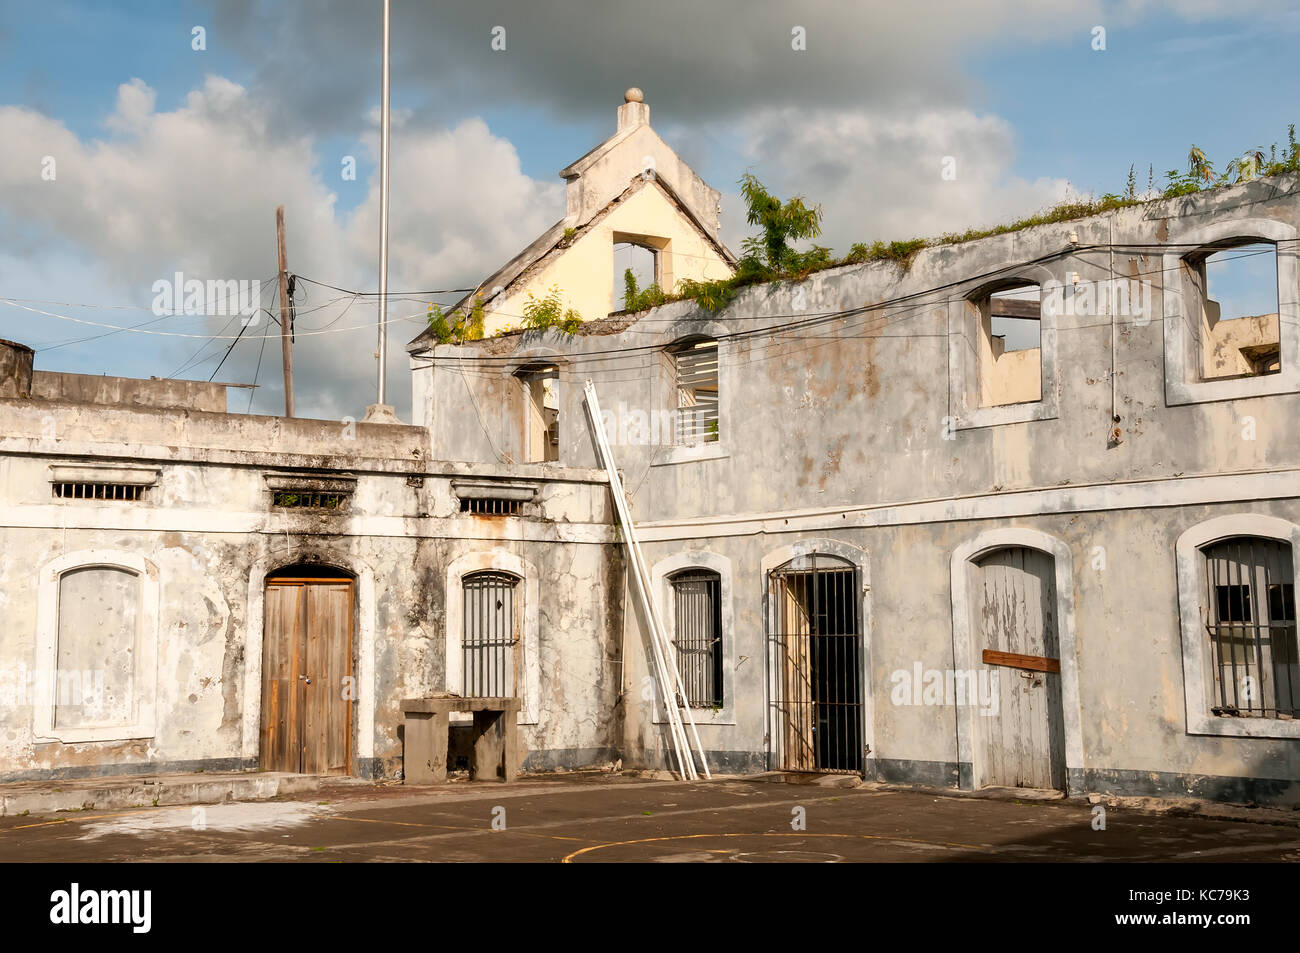 Interior of historic Fort George 175 feet above the horseshoe harbor of St. George's Grenada - Stock Image